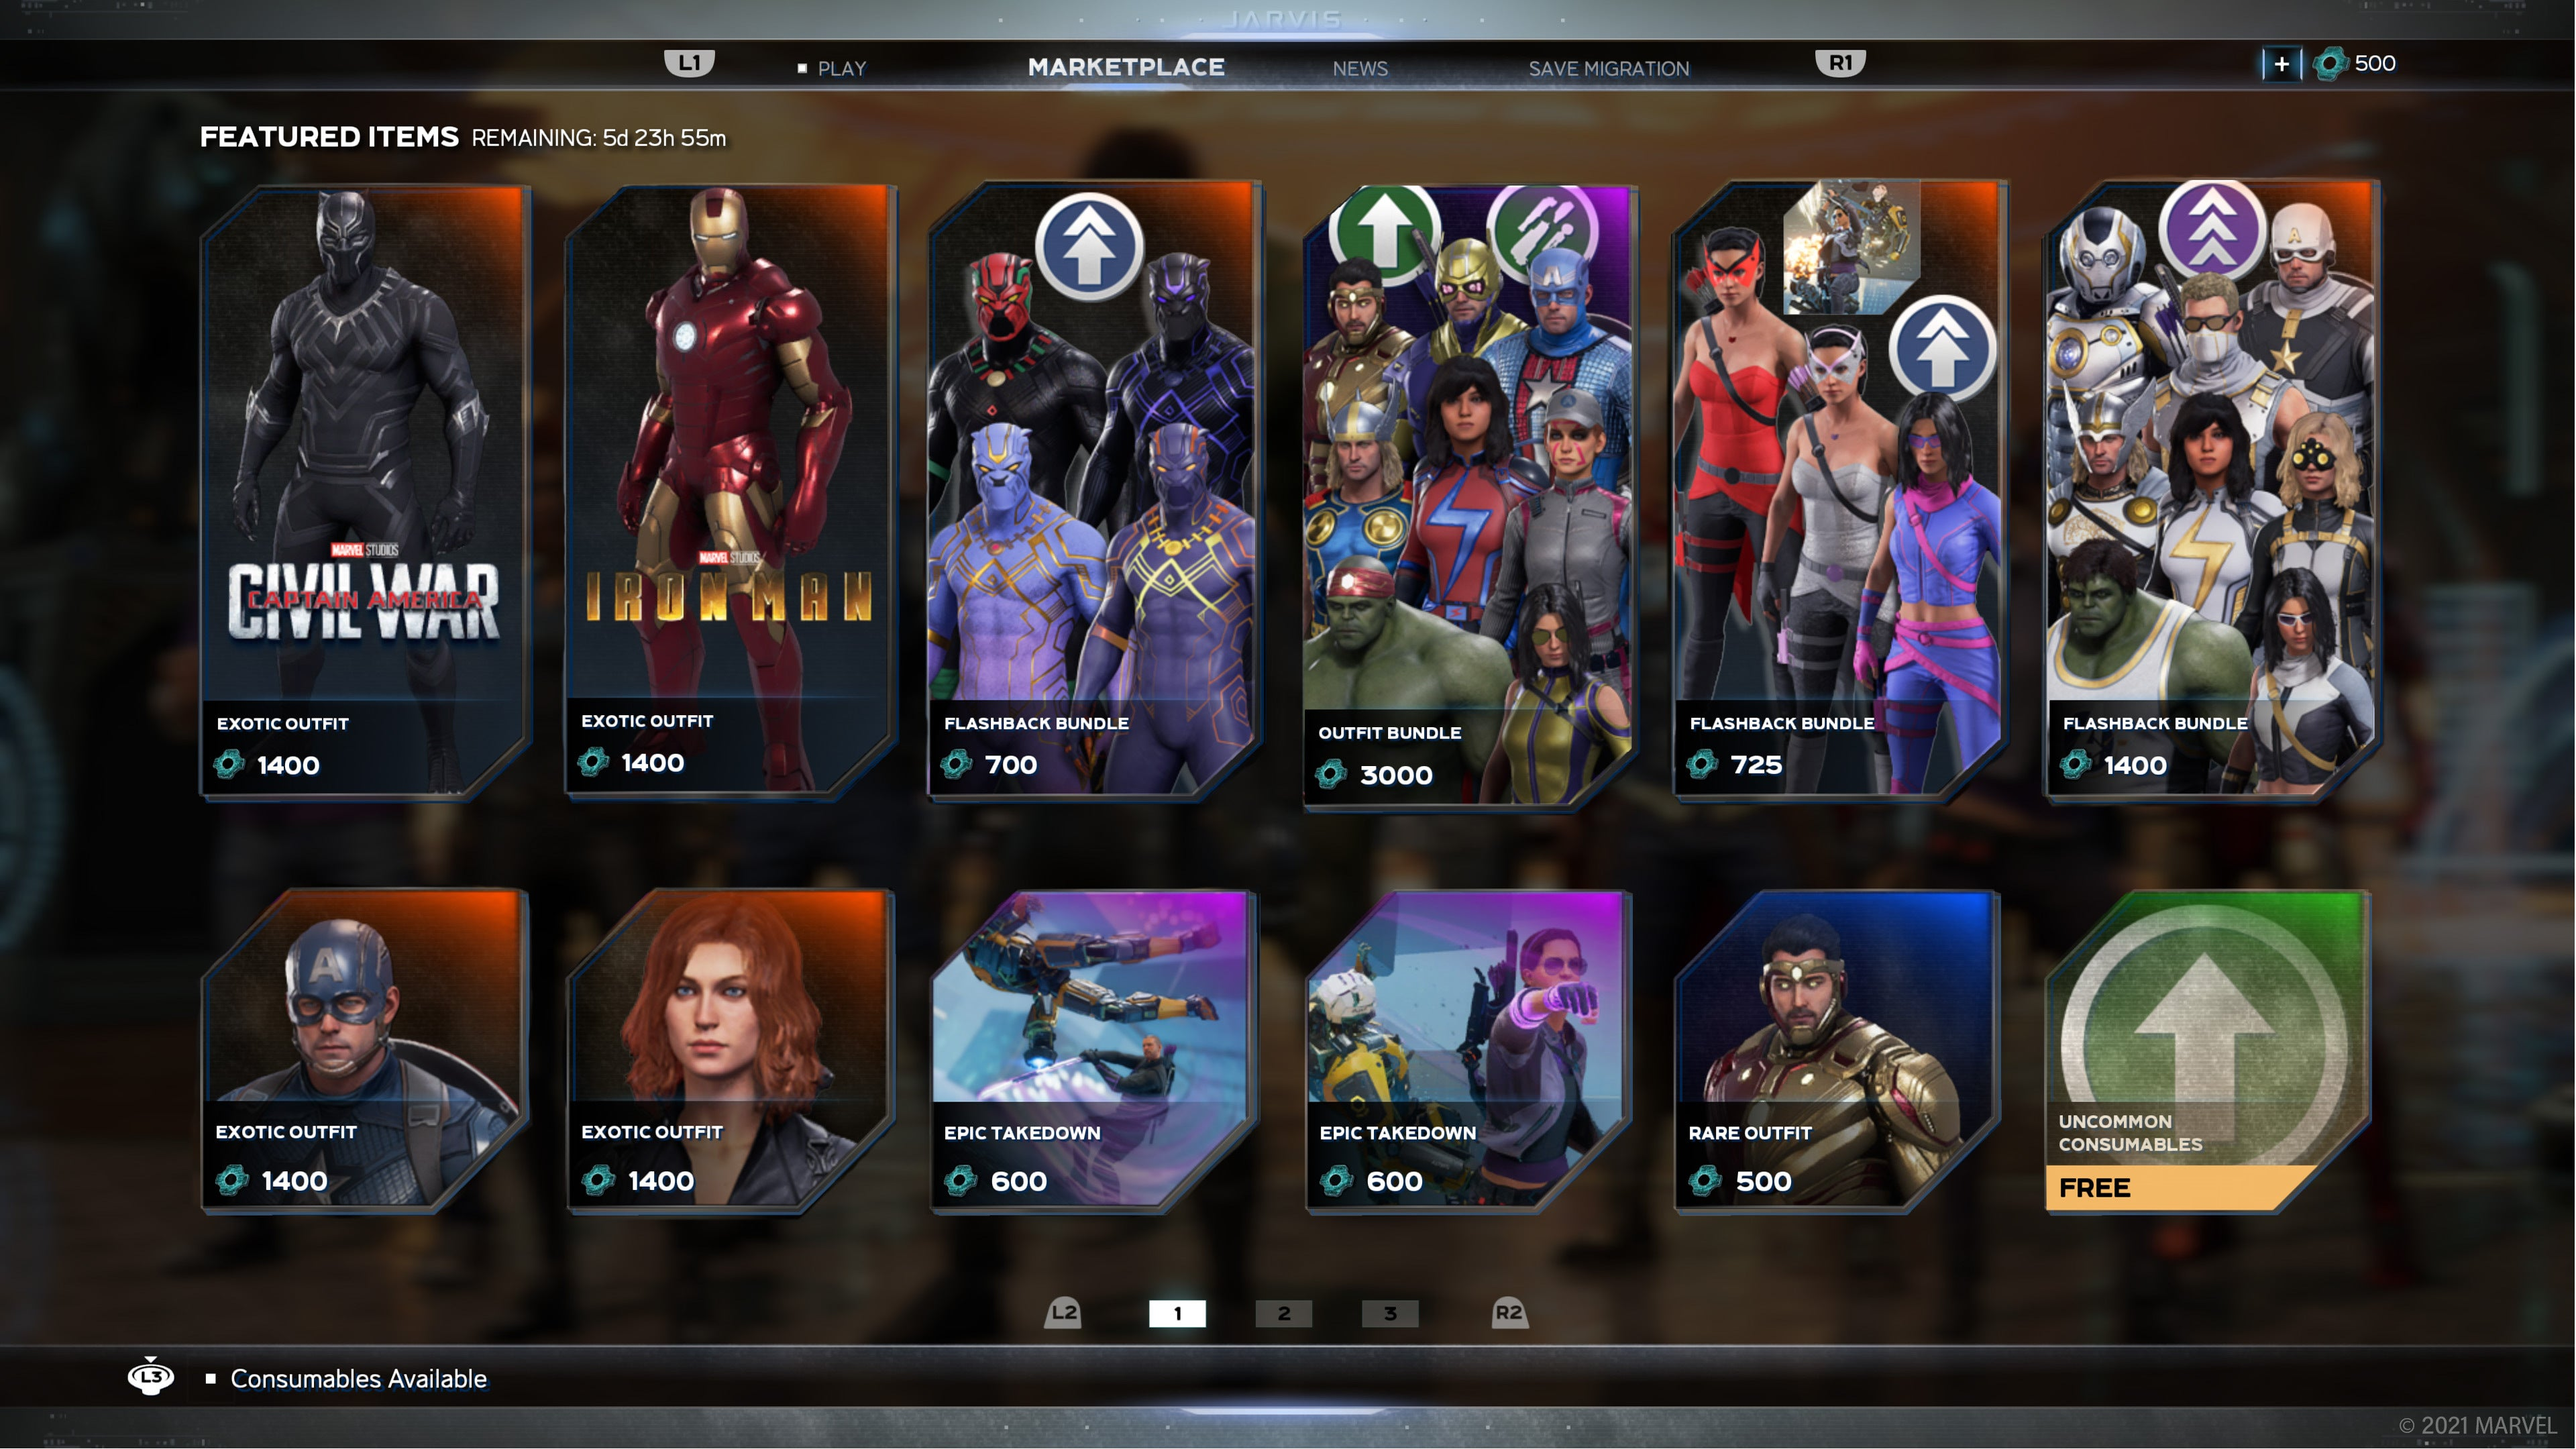 A screenshot of our In-Game marketplace for the upcoming week